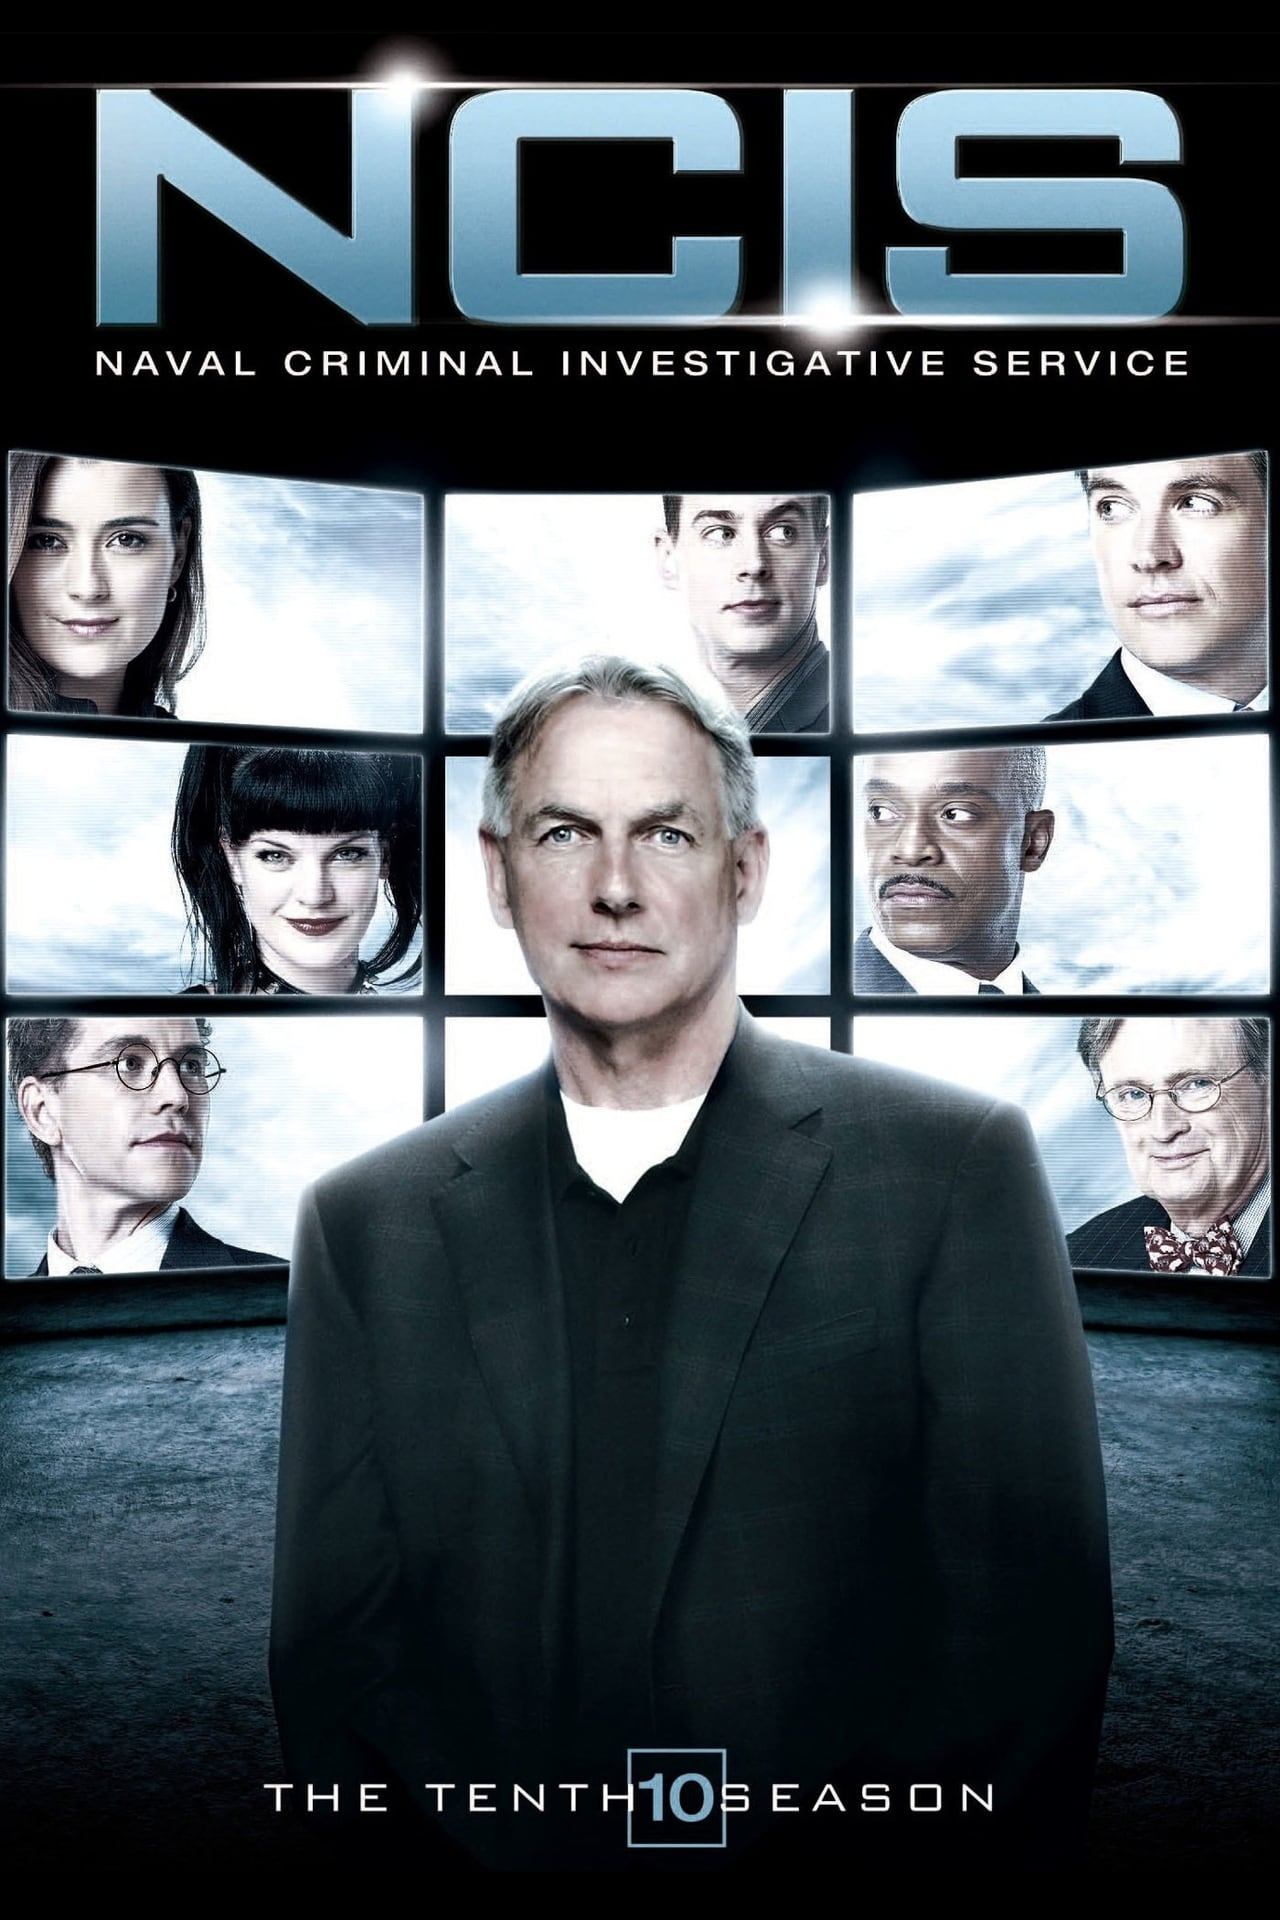 Watch Ncis Season 10 Online